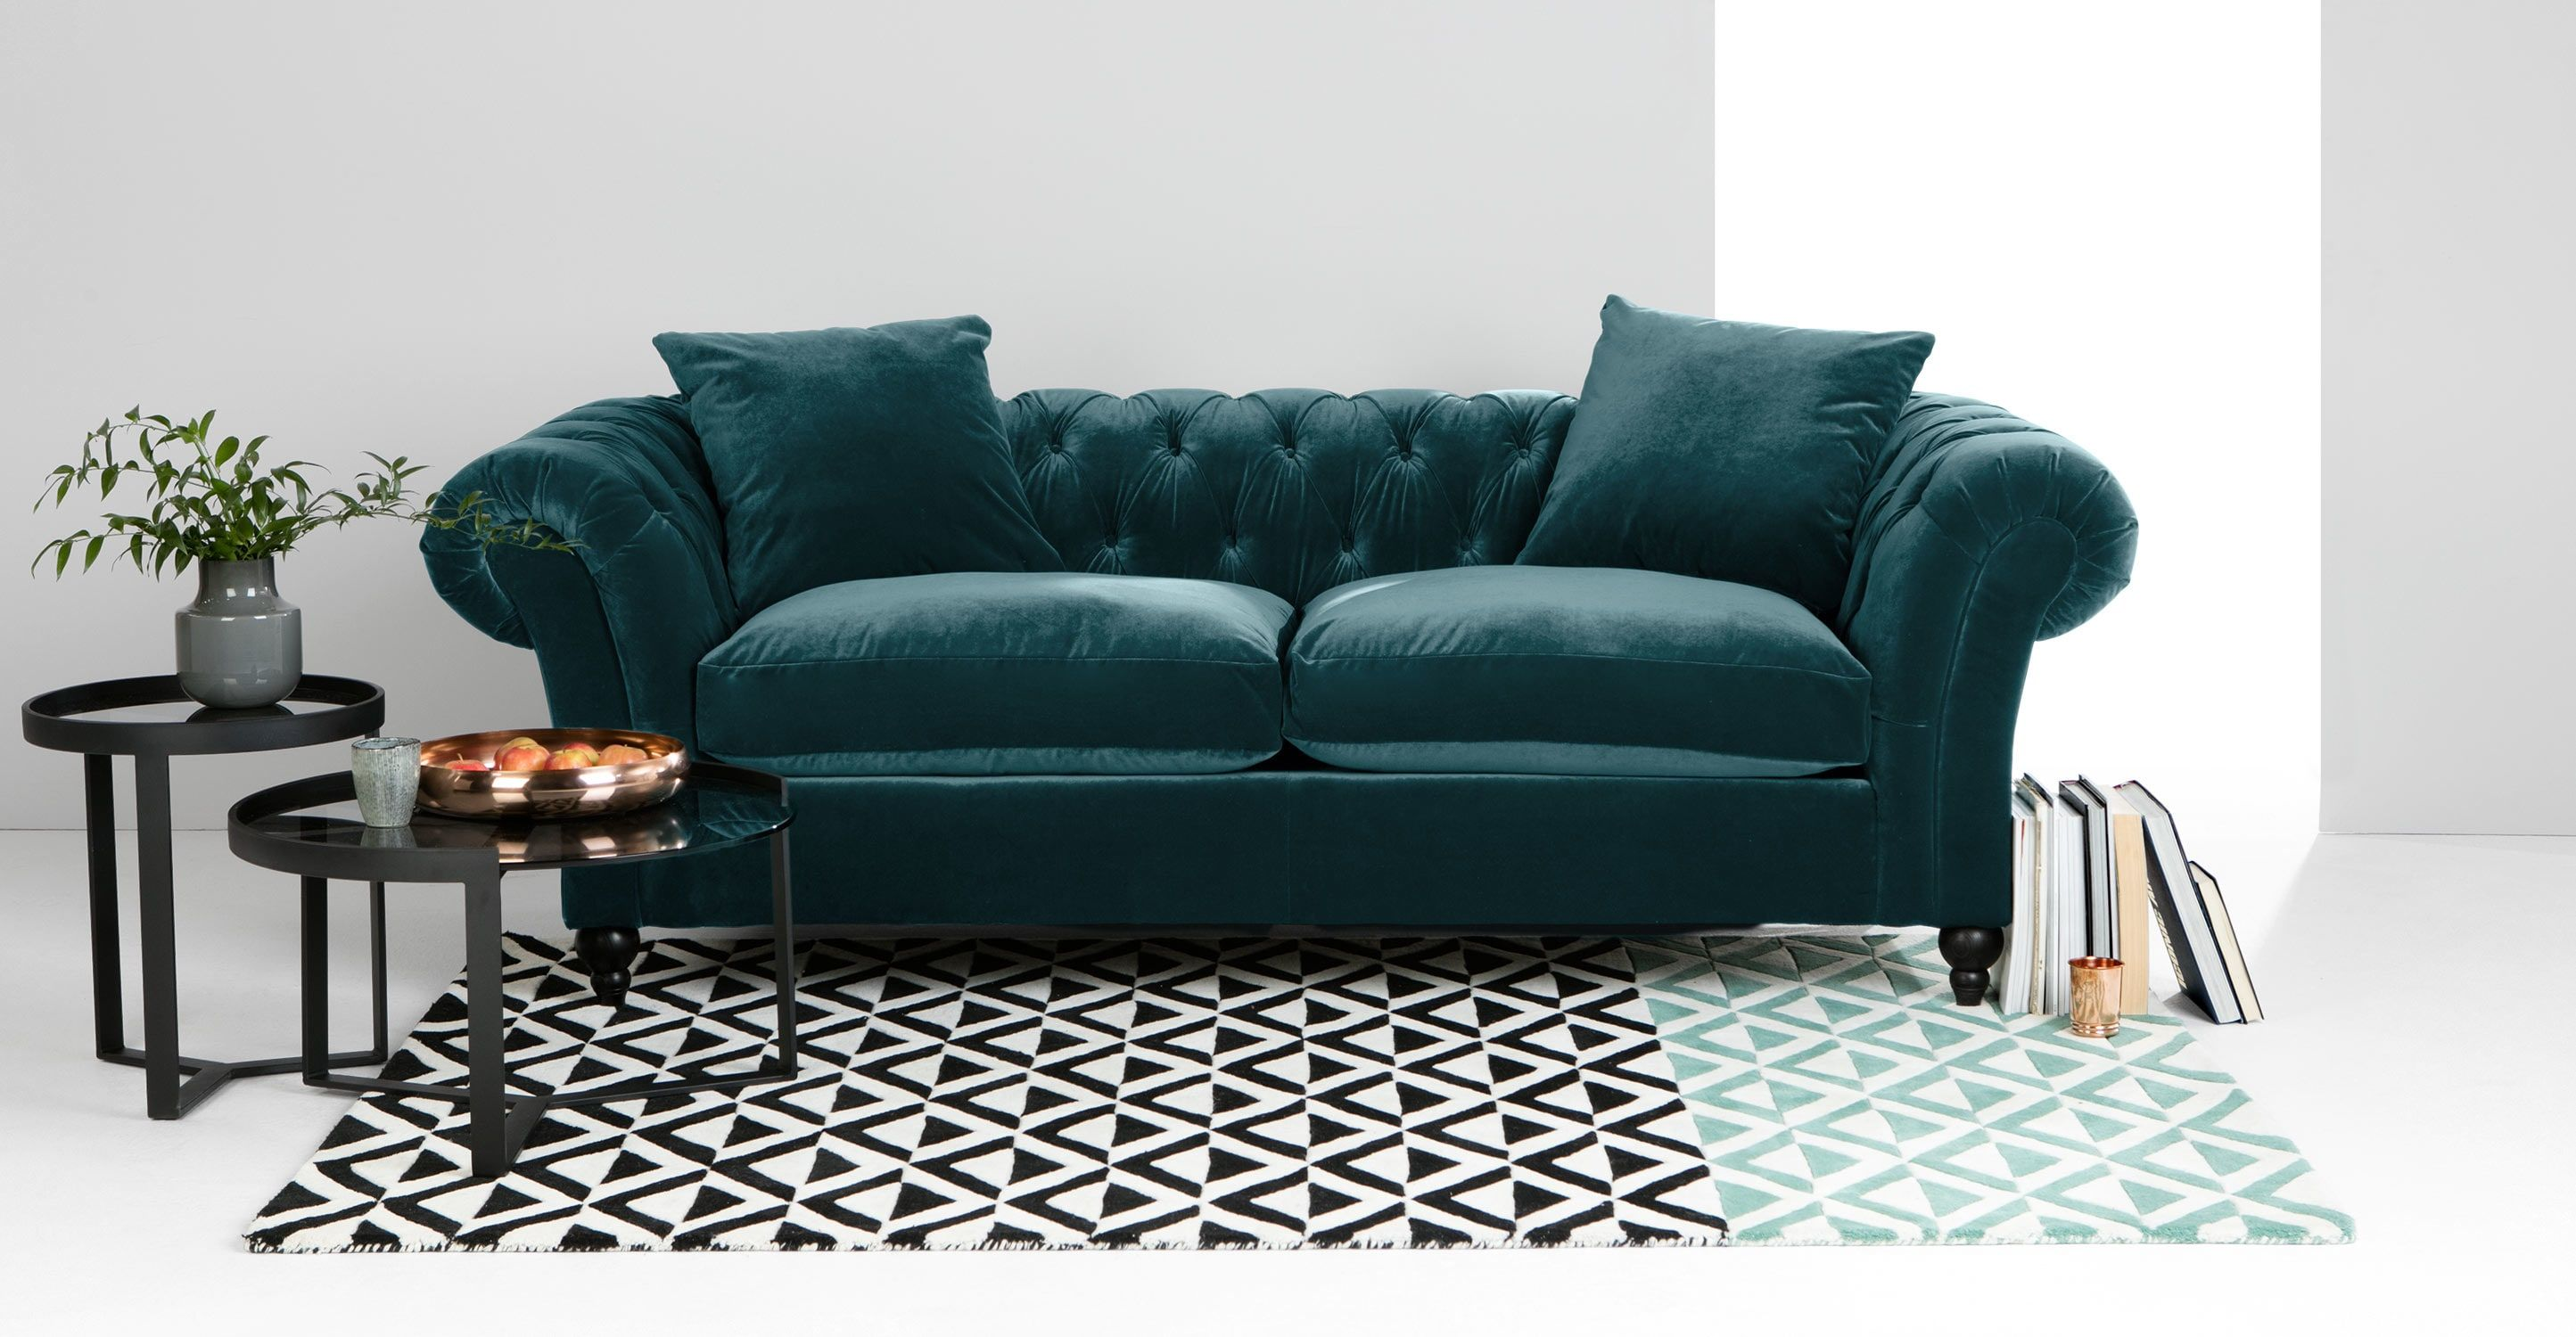 Chesterfield Sessel Samt Bardot 3 Sitzer Chesterfield Sofa Samt In Ozeanblau Haus